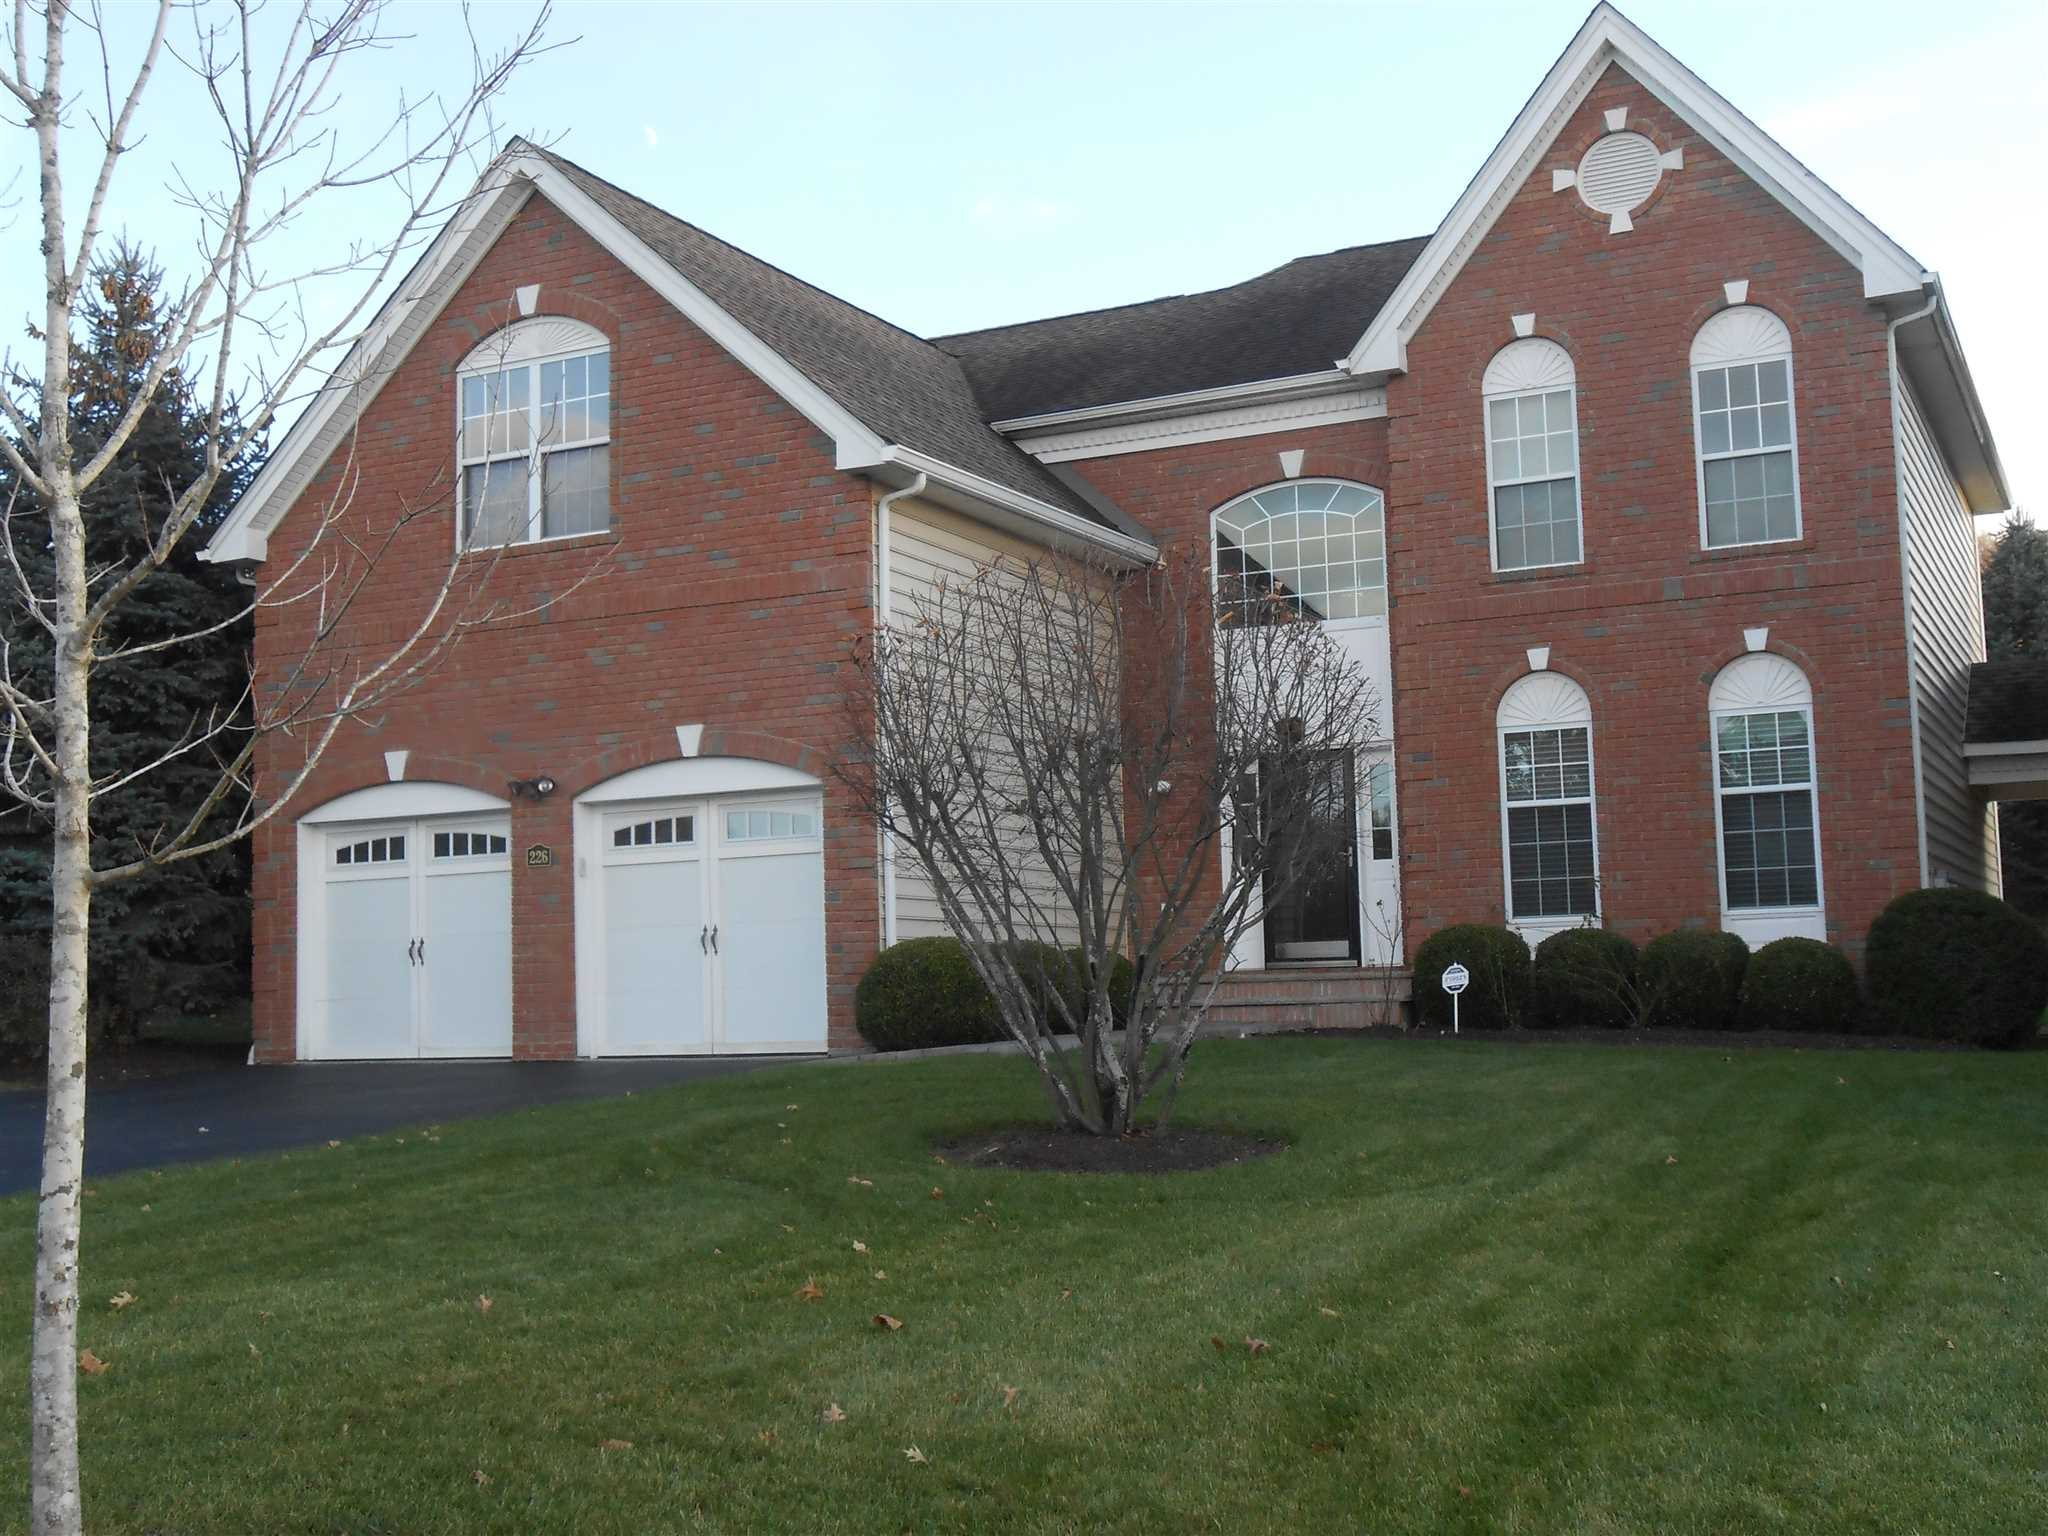 Single Family Home for Sale at 226 ROOSEVELT Drive 226 ROOSEVELT Drive Fishkill, New York 12524 United States